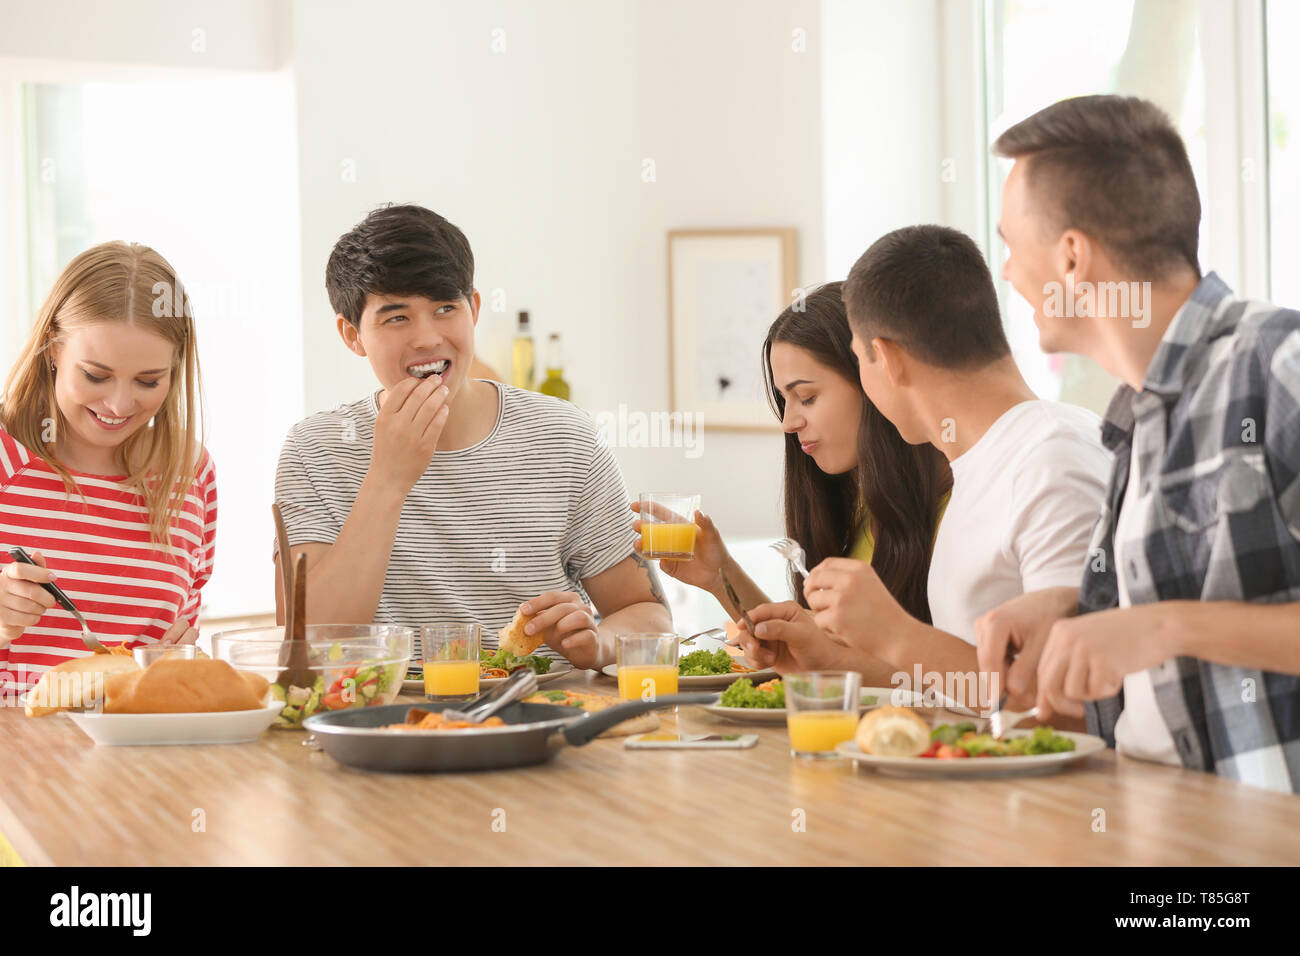 Astonishing Friends Eating At Table In Kitchen Stock Photo 245984952 Download Free Architecture Designs Embacsunscenecom